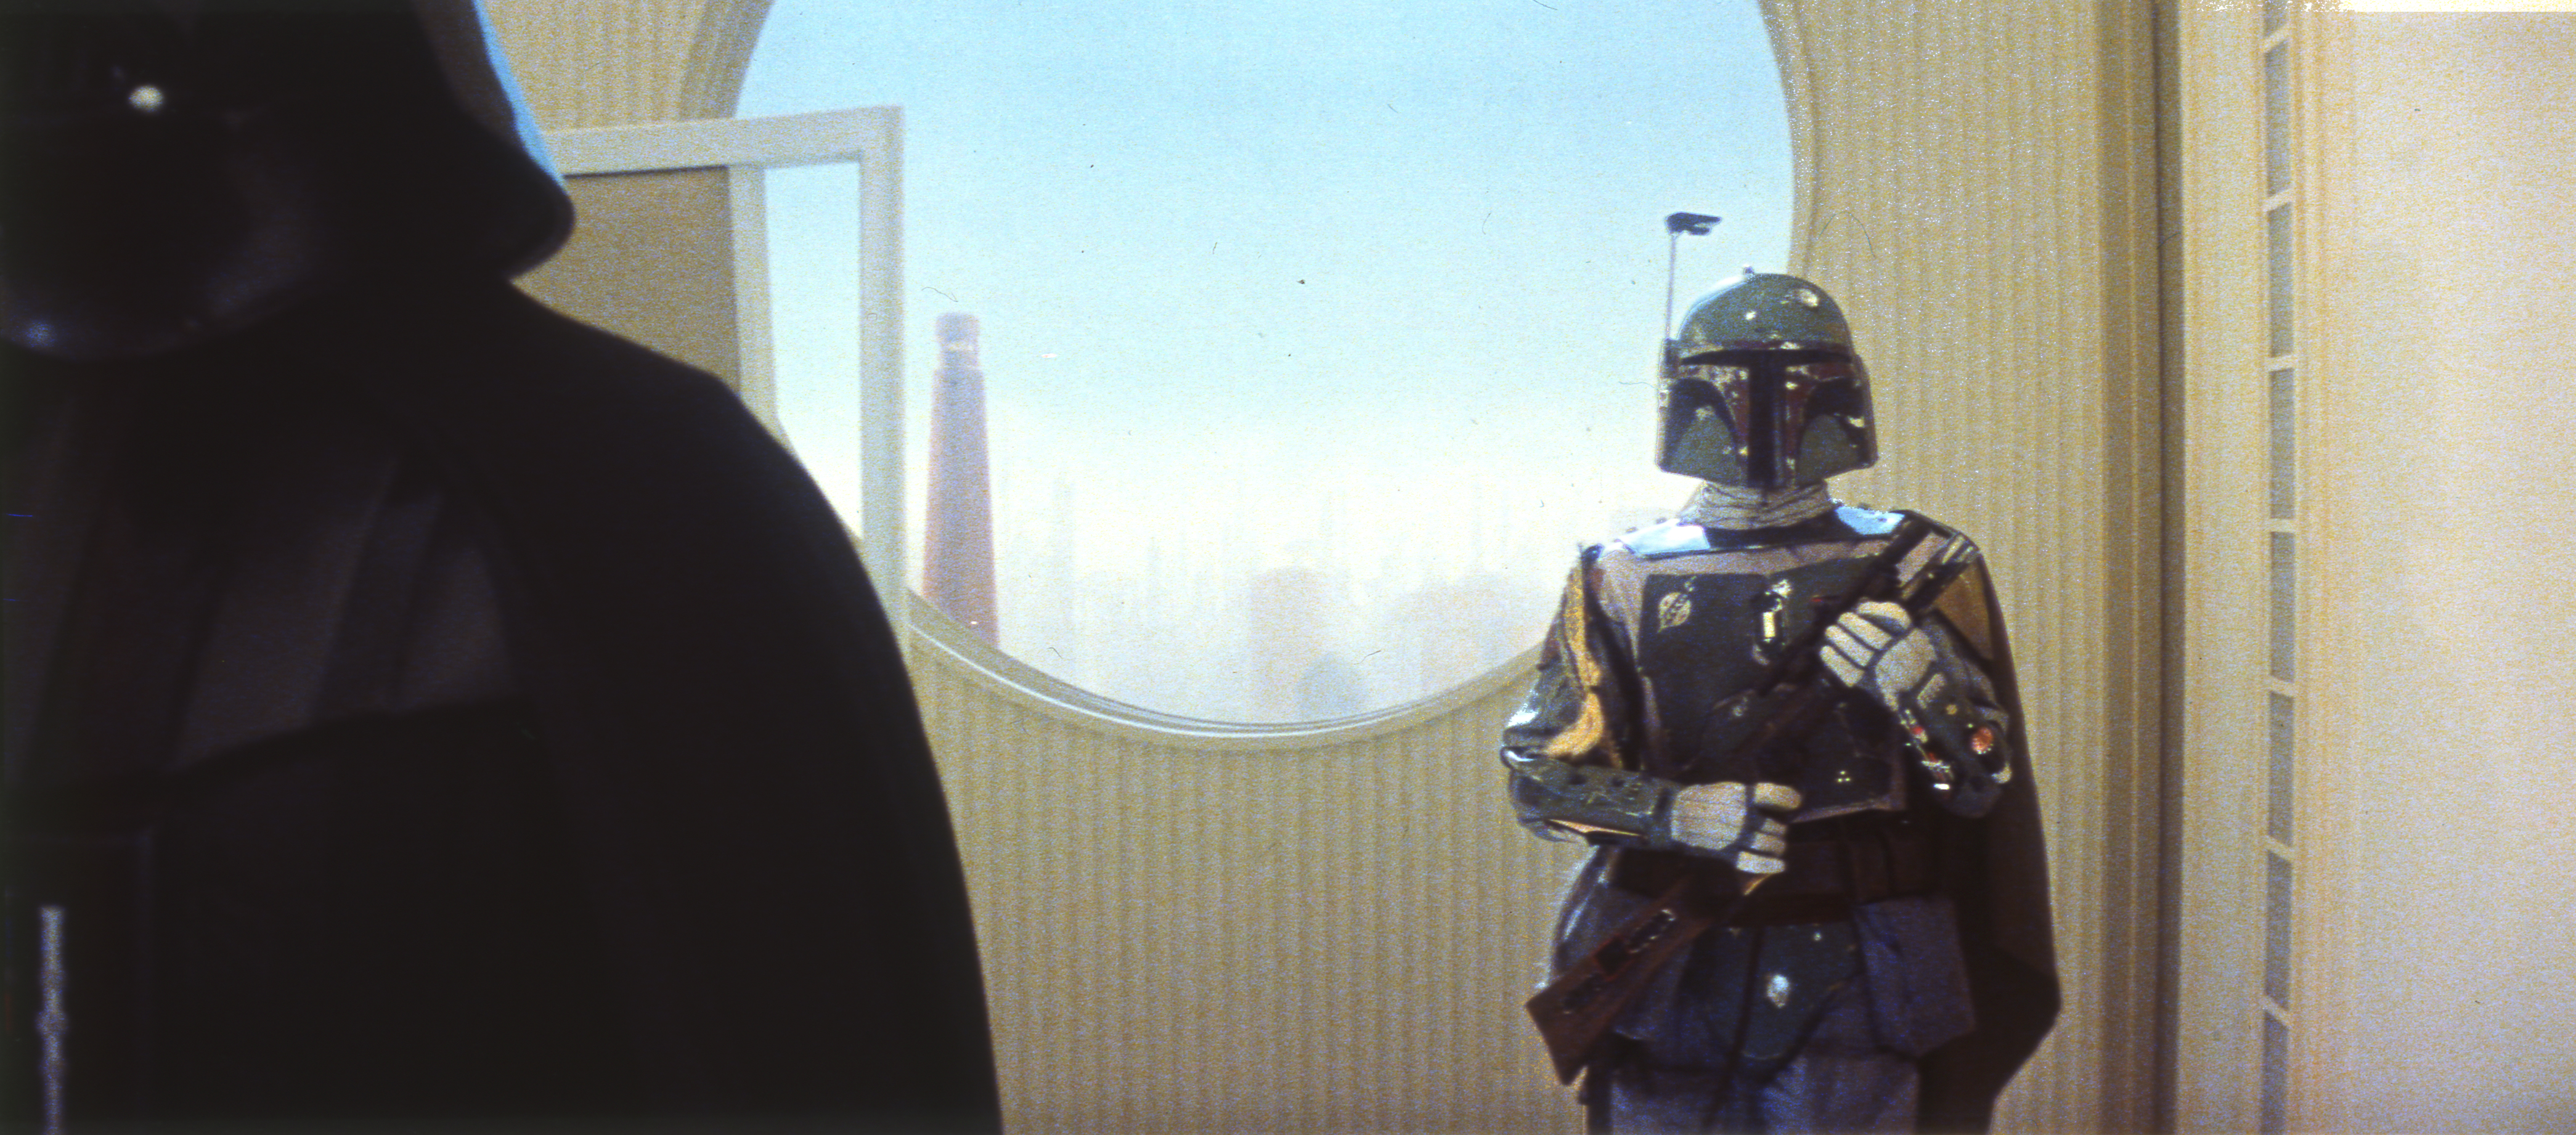 Boba Fett Empire Strikes Back Costume - 70mm Scans